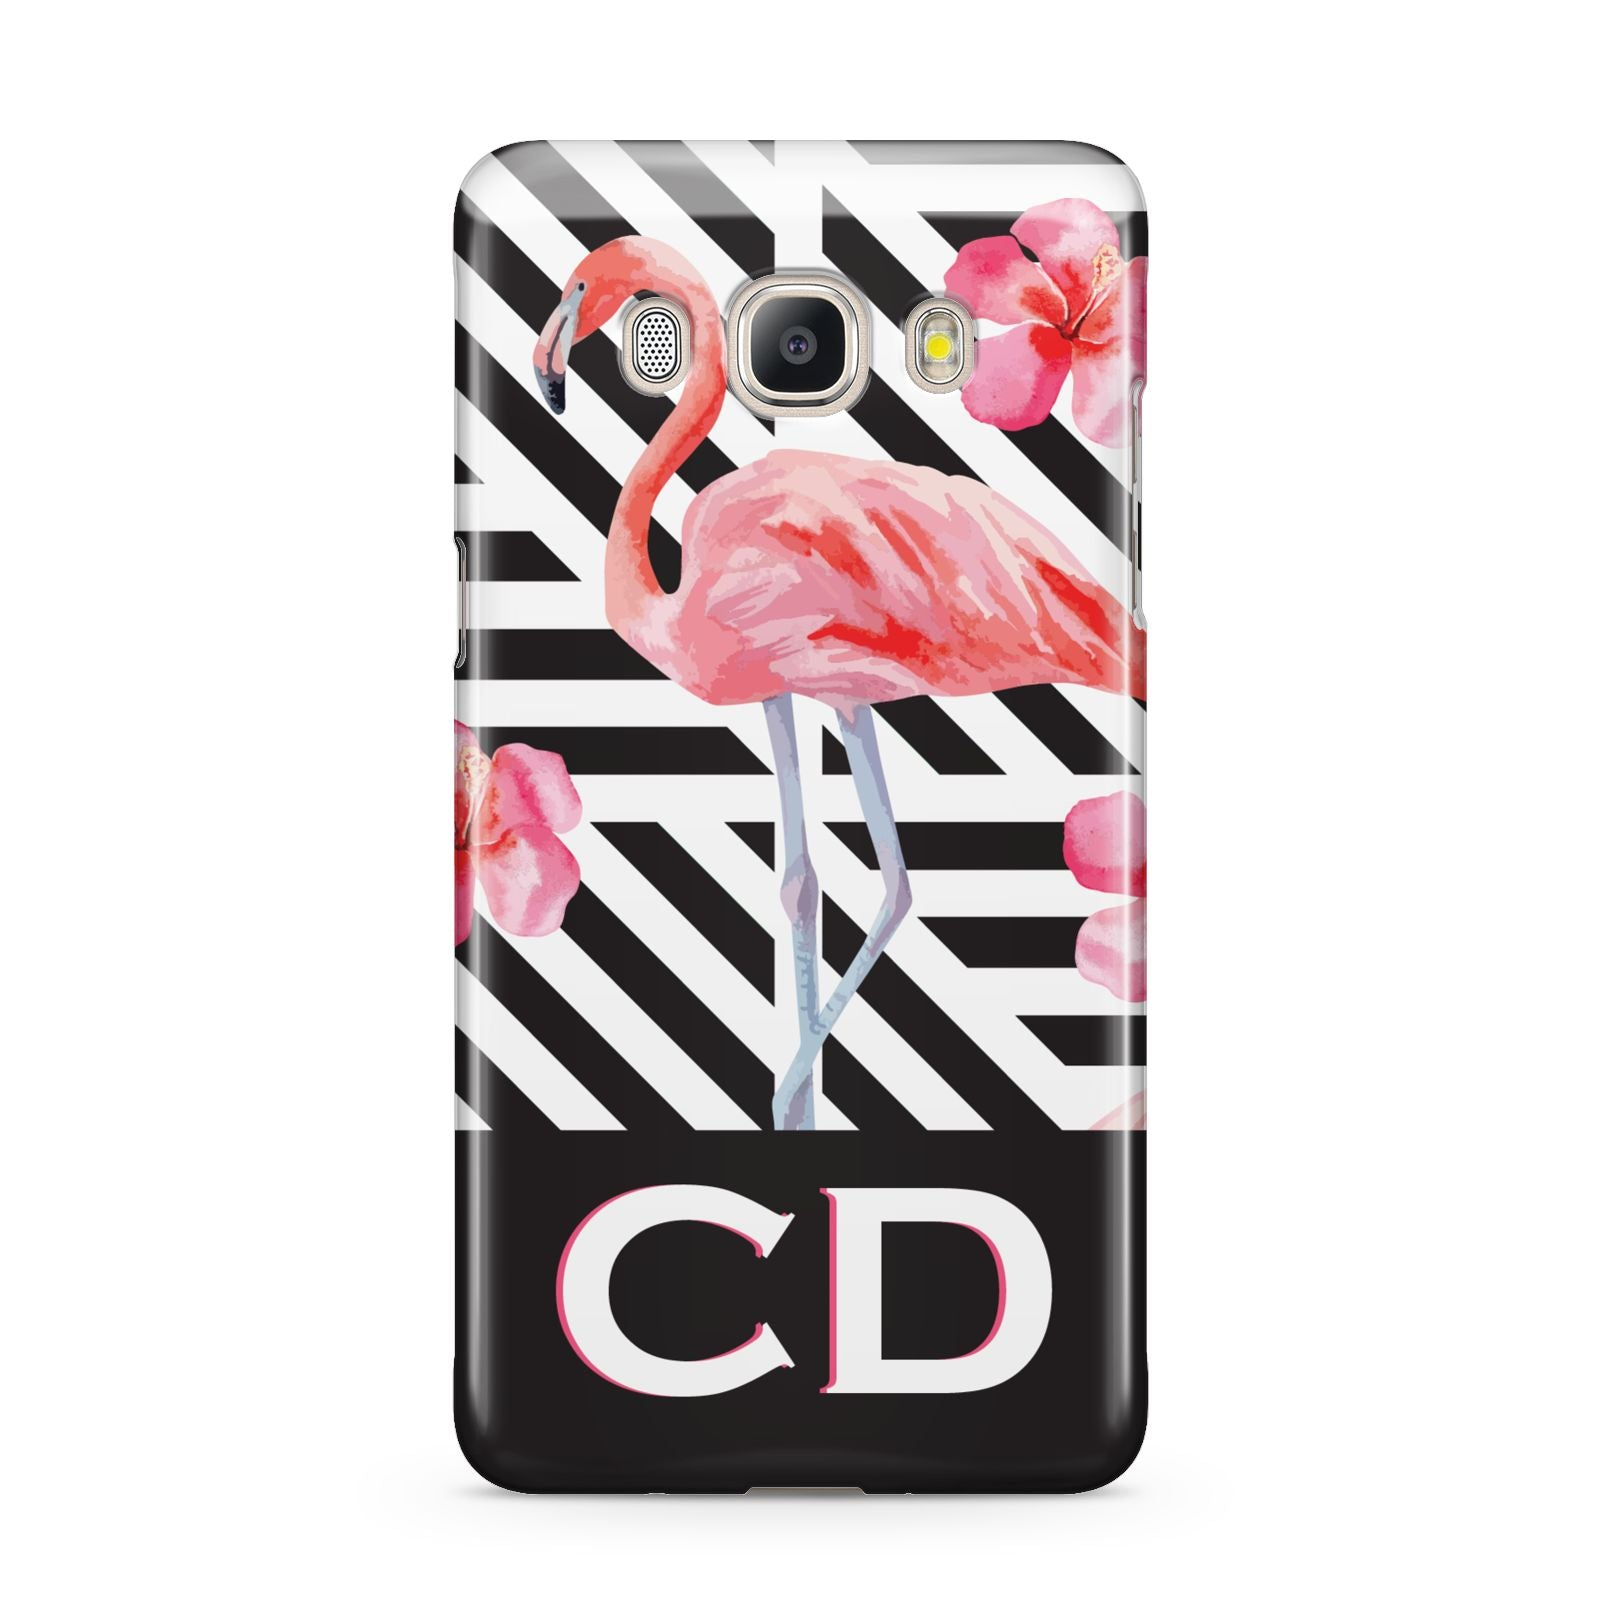 Flamingo Black Geometric Samsung Galaxy J5 2016 Case